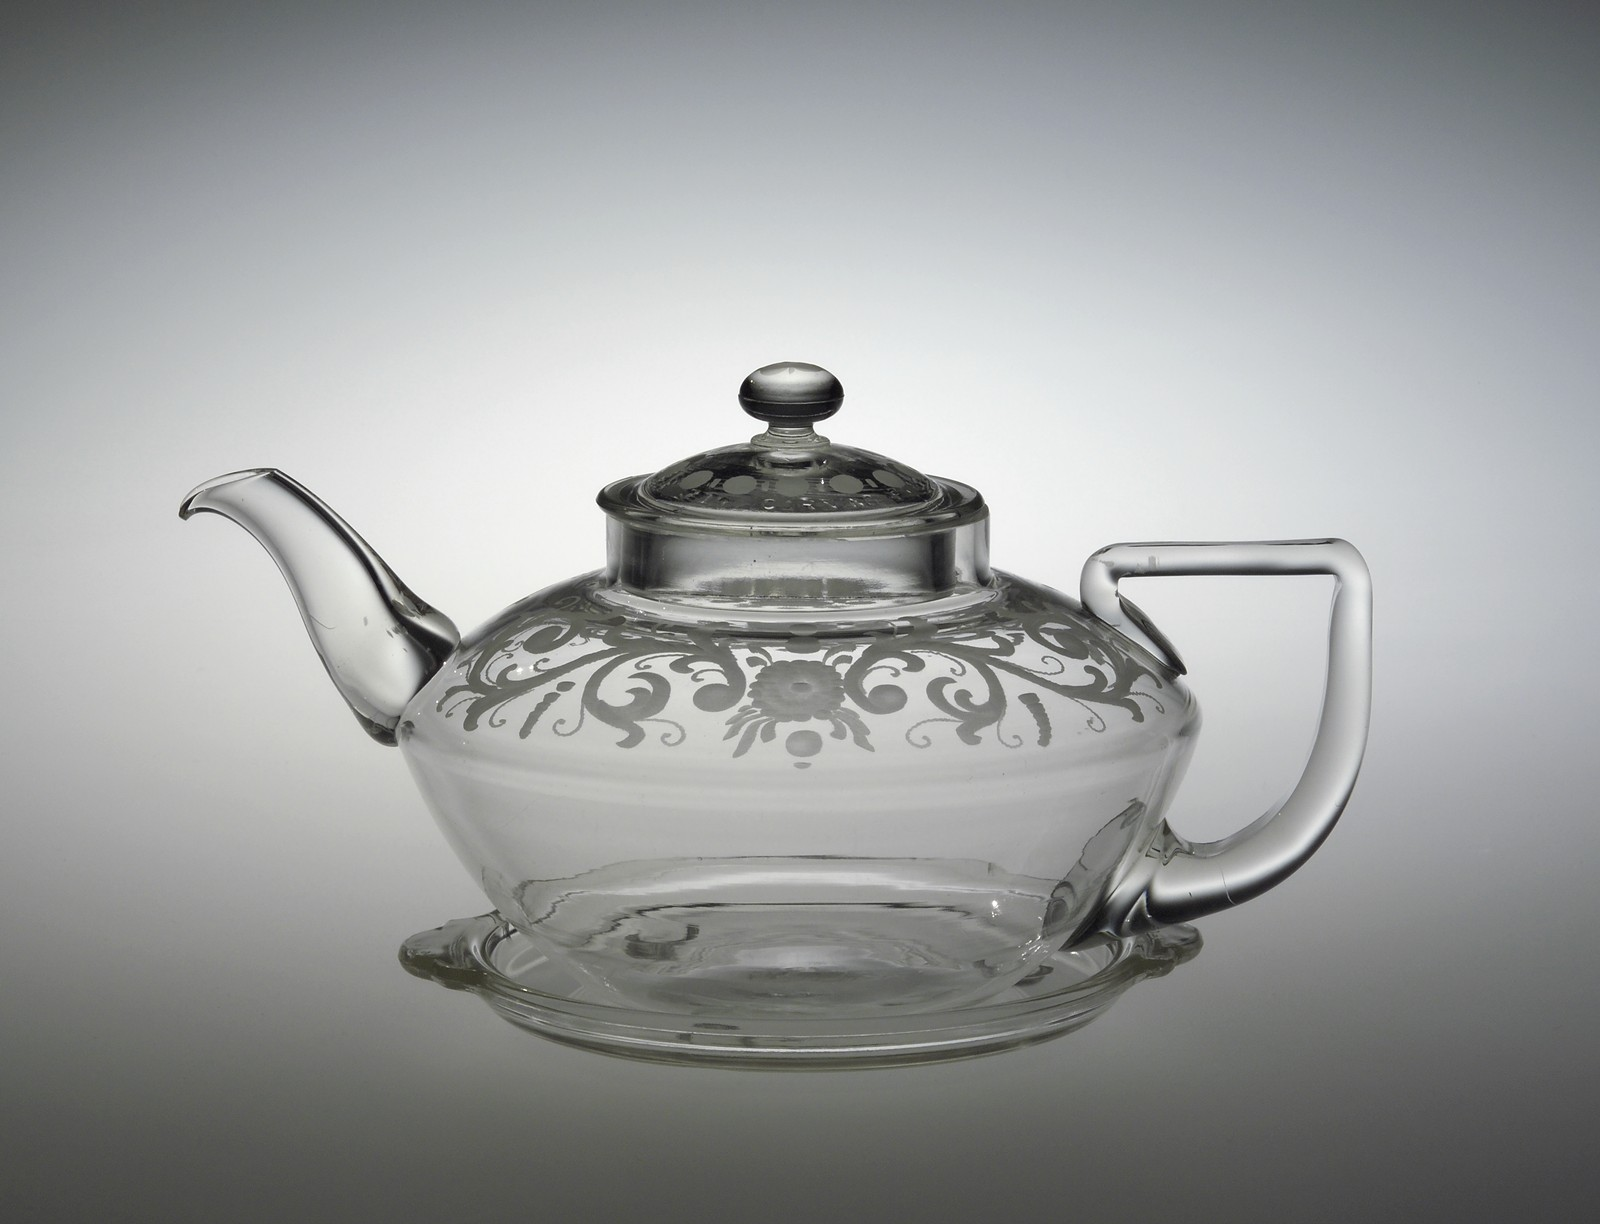 Pyrex Teapot, Corning Glass Works, designed by Frederick Carder, about 1922-1925, H: 14.6 cm W: 26 cm D: 17.7 cm, gift of June Franklin Wynne in memory of Anna Youngflesh (2003.4.75).